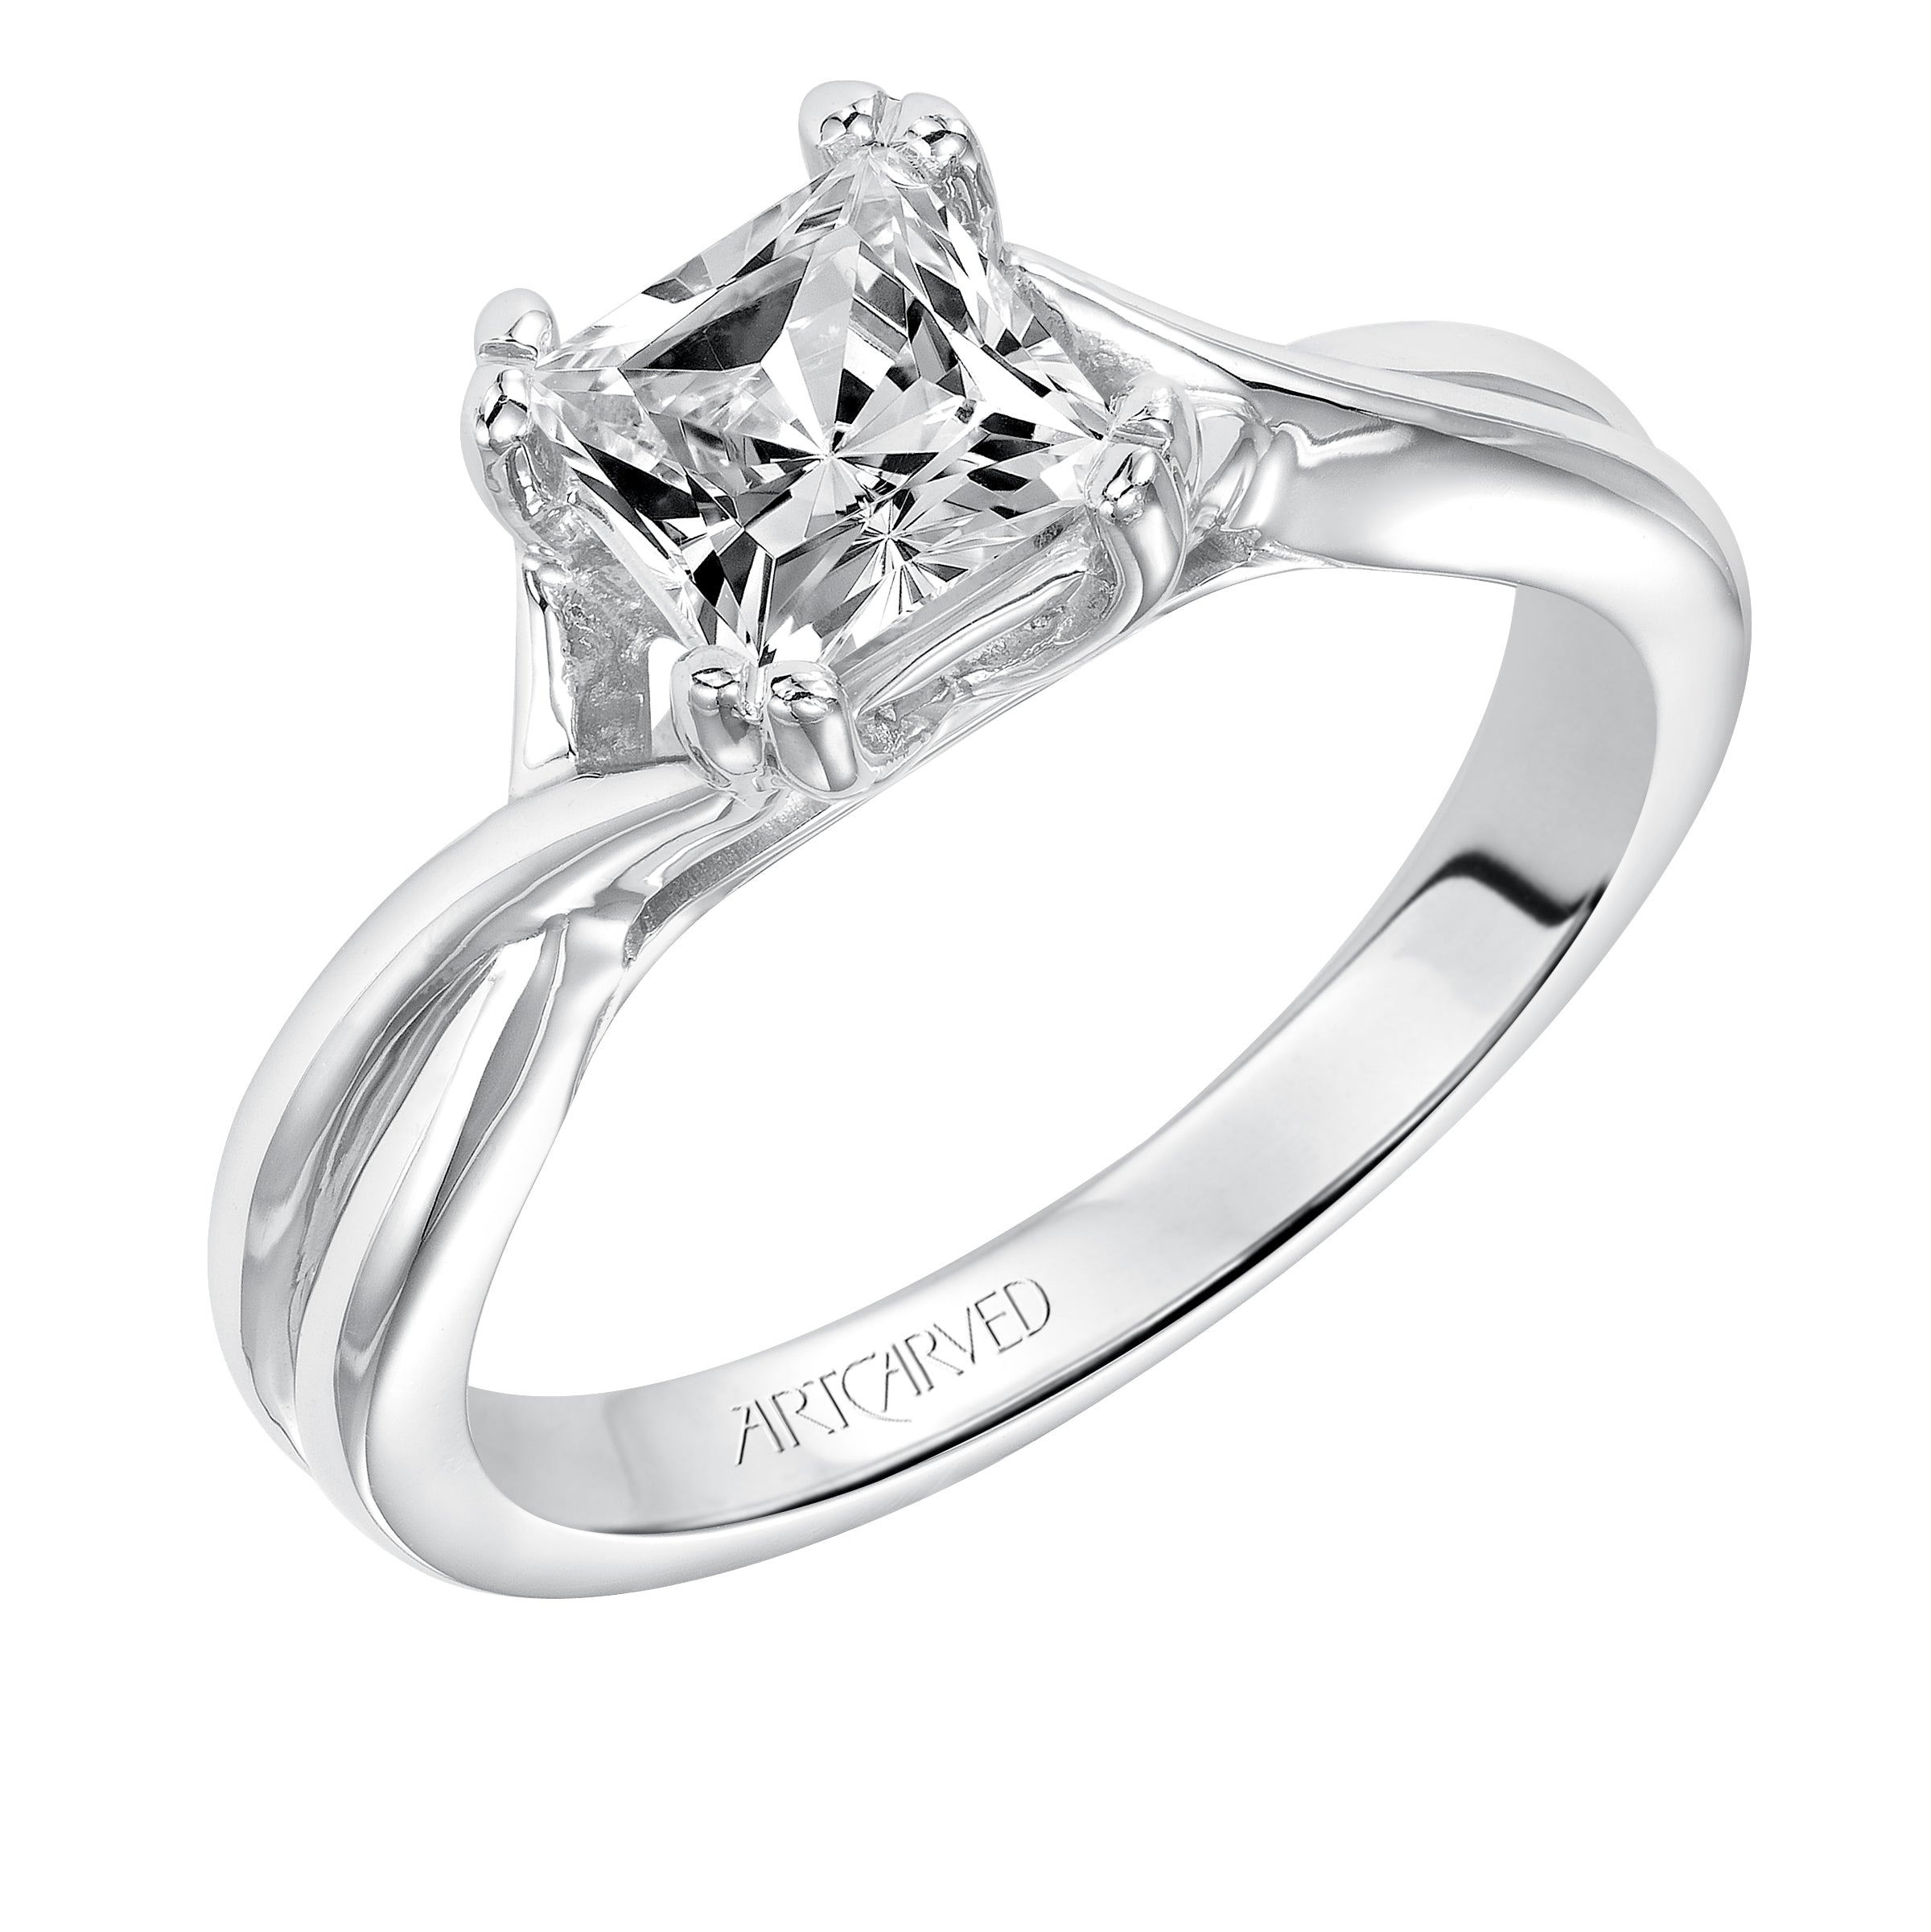 Double Prong Cathedral Twist Solitaire Engagement Ring